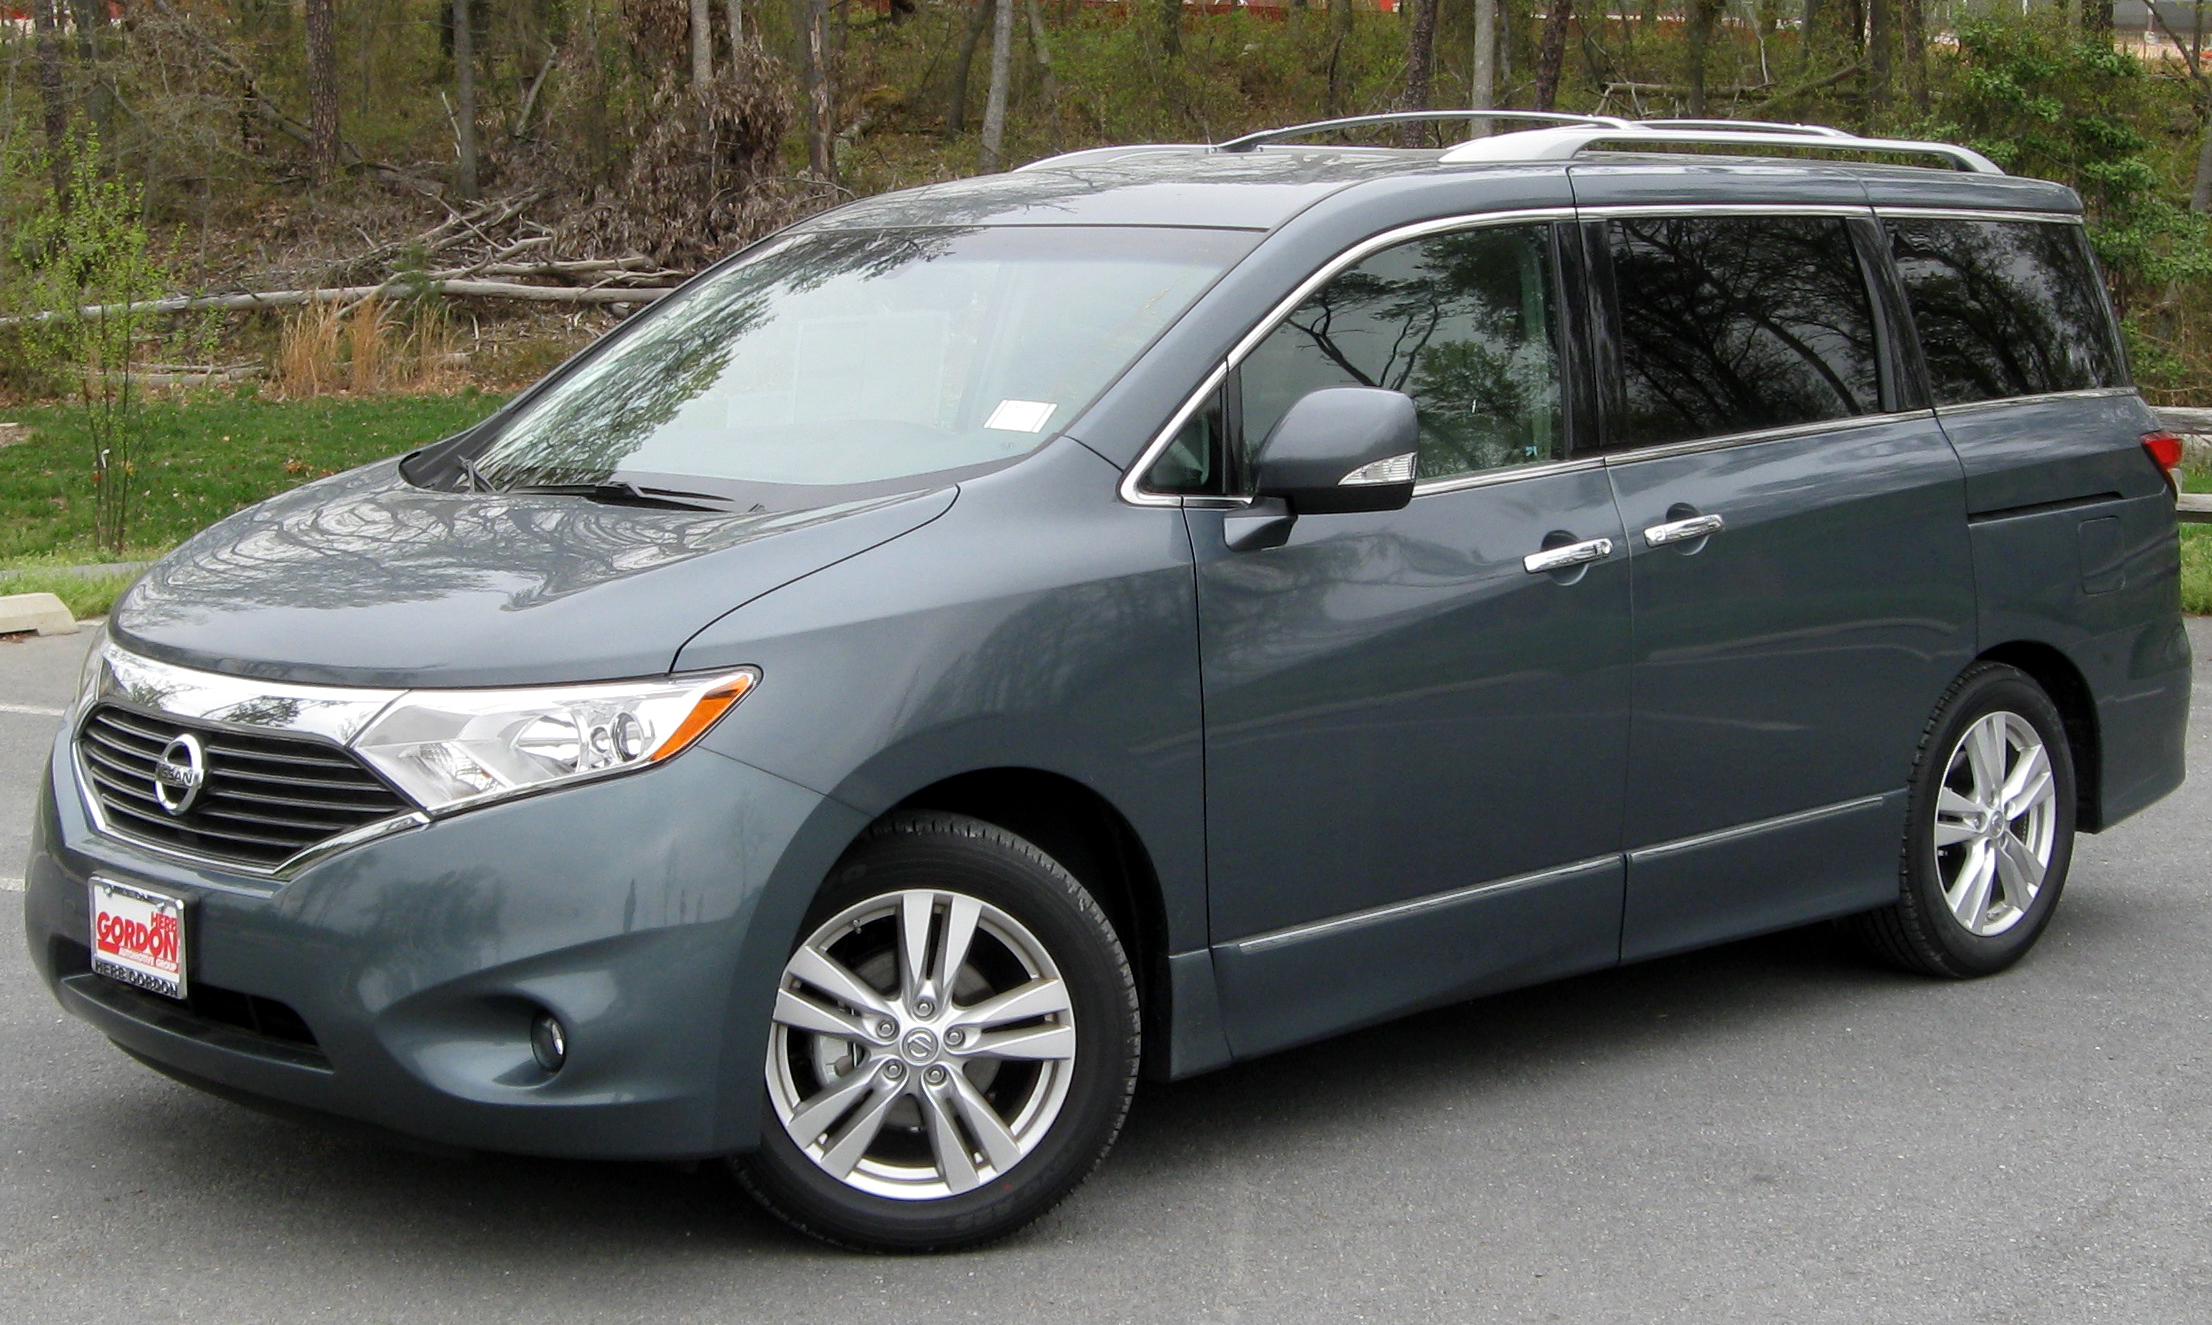 Nissan Quest - Images de Voitures